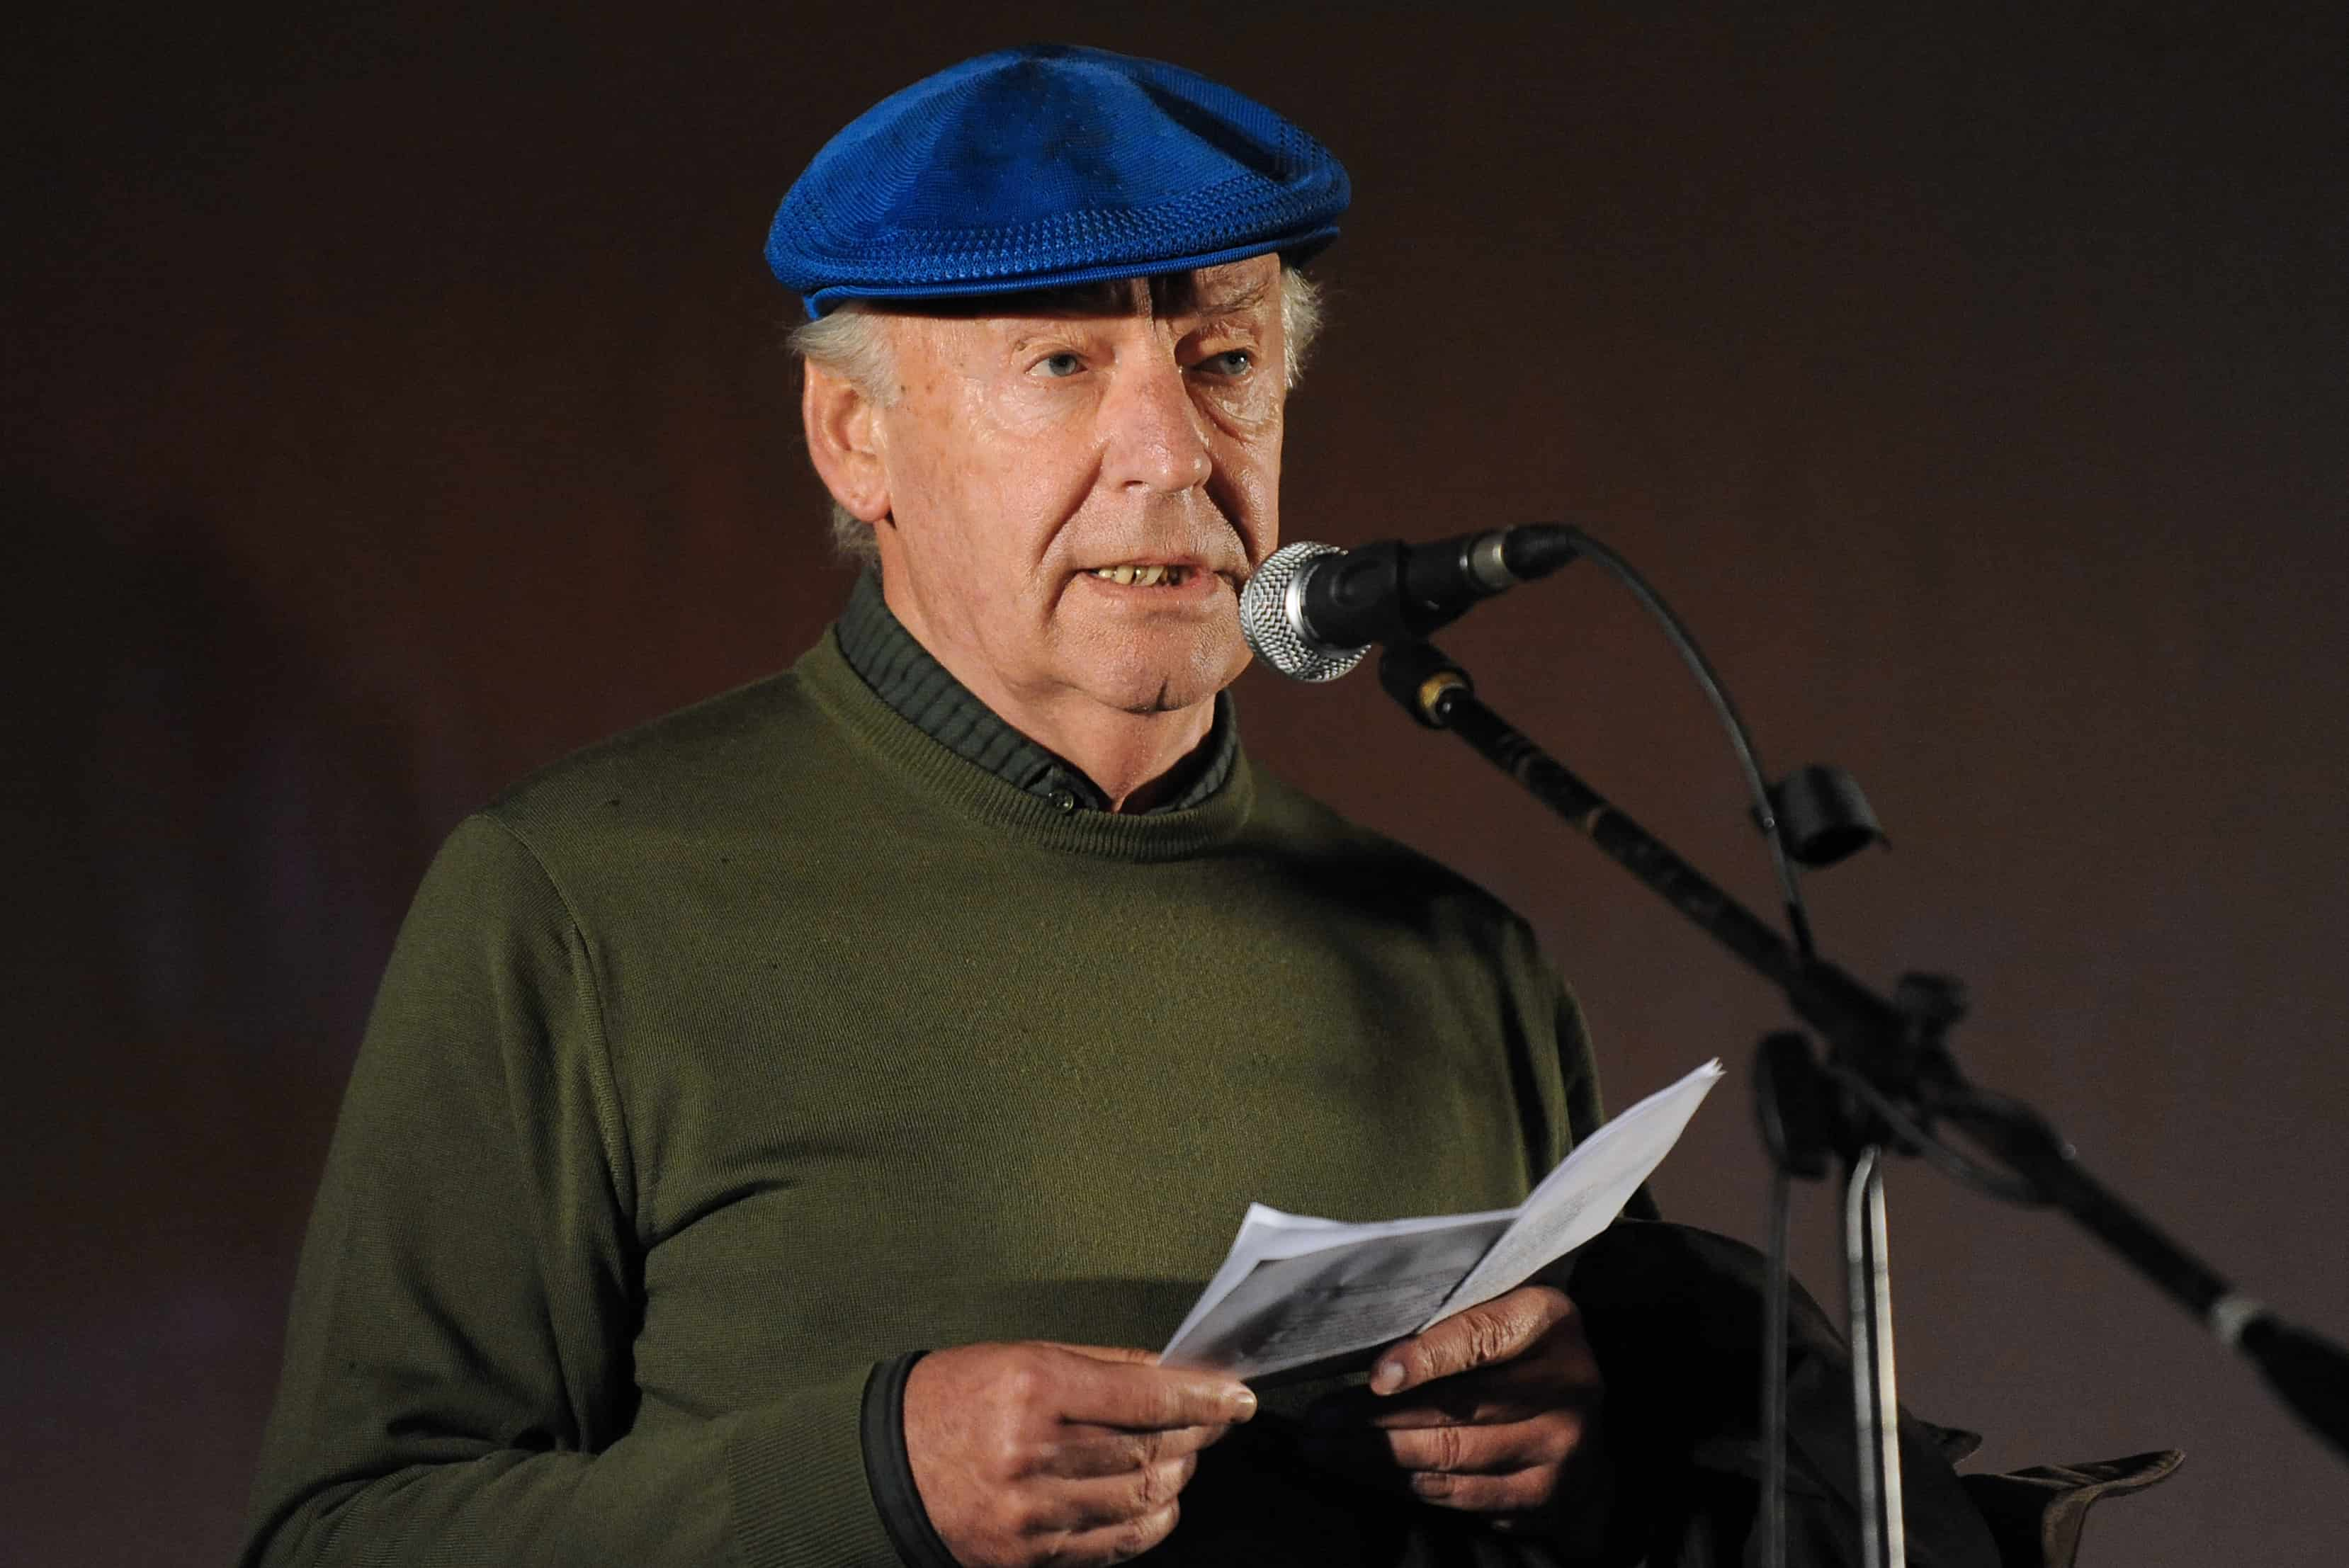 Uruguayan writer Eduardo Galeano speaks during the closing march to support the referendum to abolish an amnesty law for those involved in crimes against human rights during Uruguay's last dictatorship (1973-1984), in Montevideo on October 20, 2009. Galeano died in Montevideo on April 13, 2015 at the age of 74.